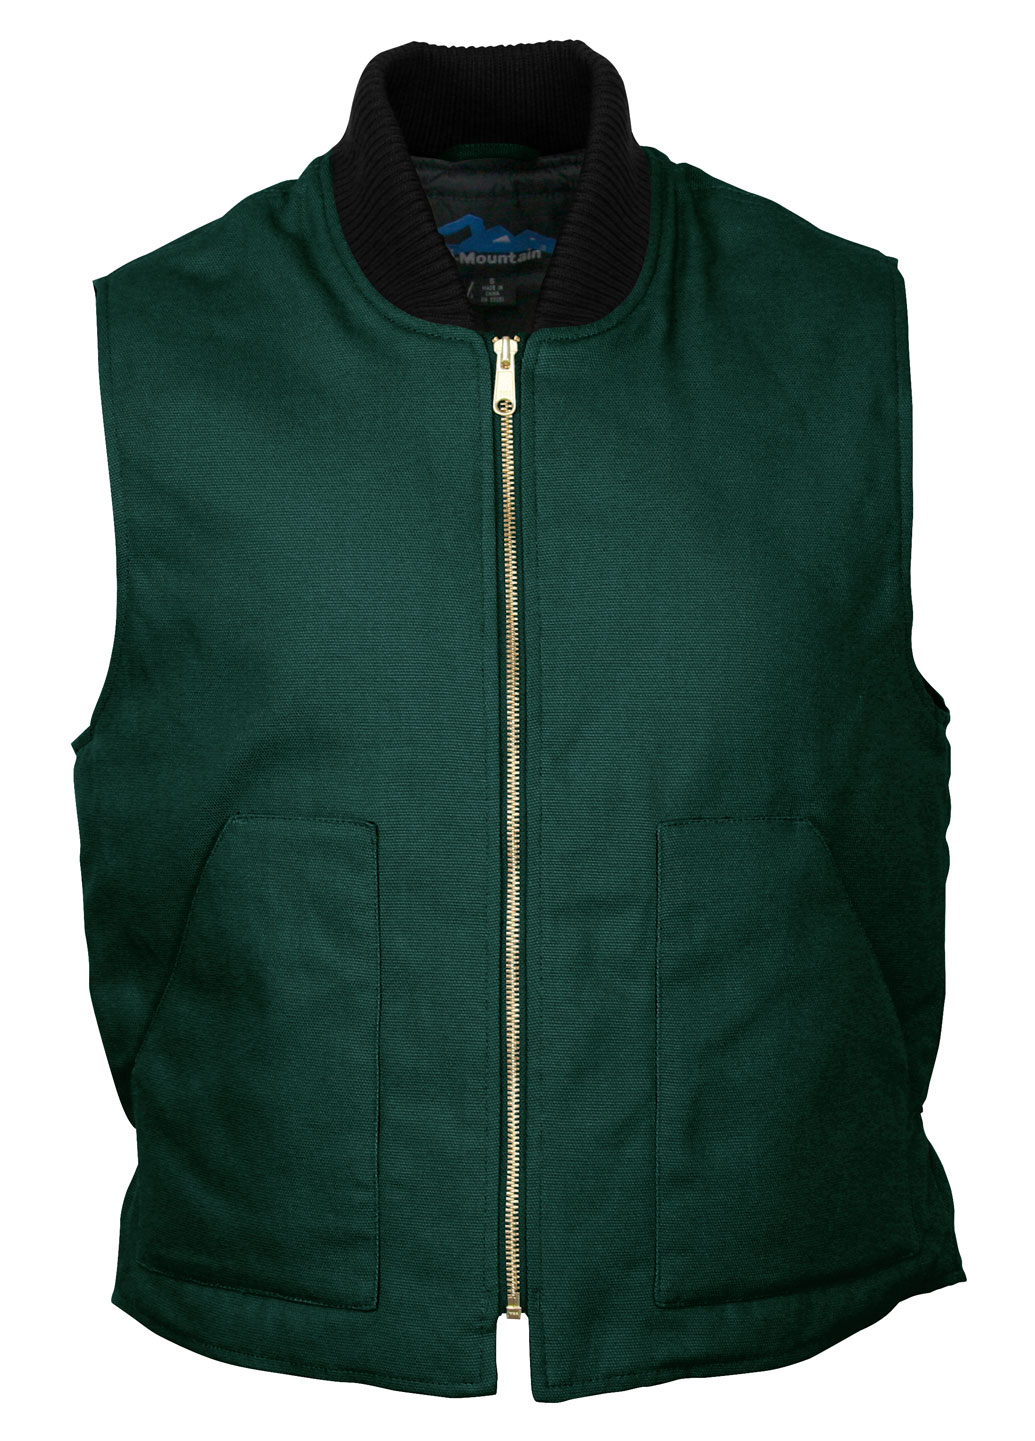 Mens Heavyweight Lodestar Vest